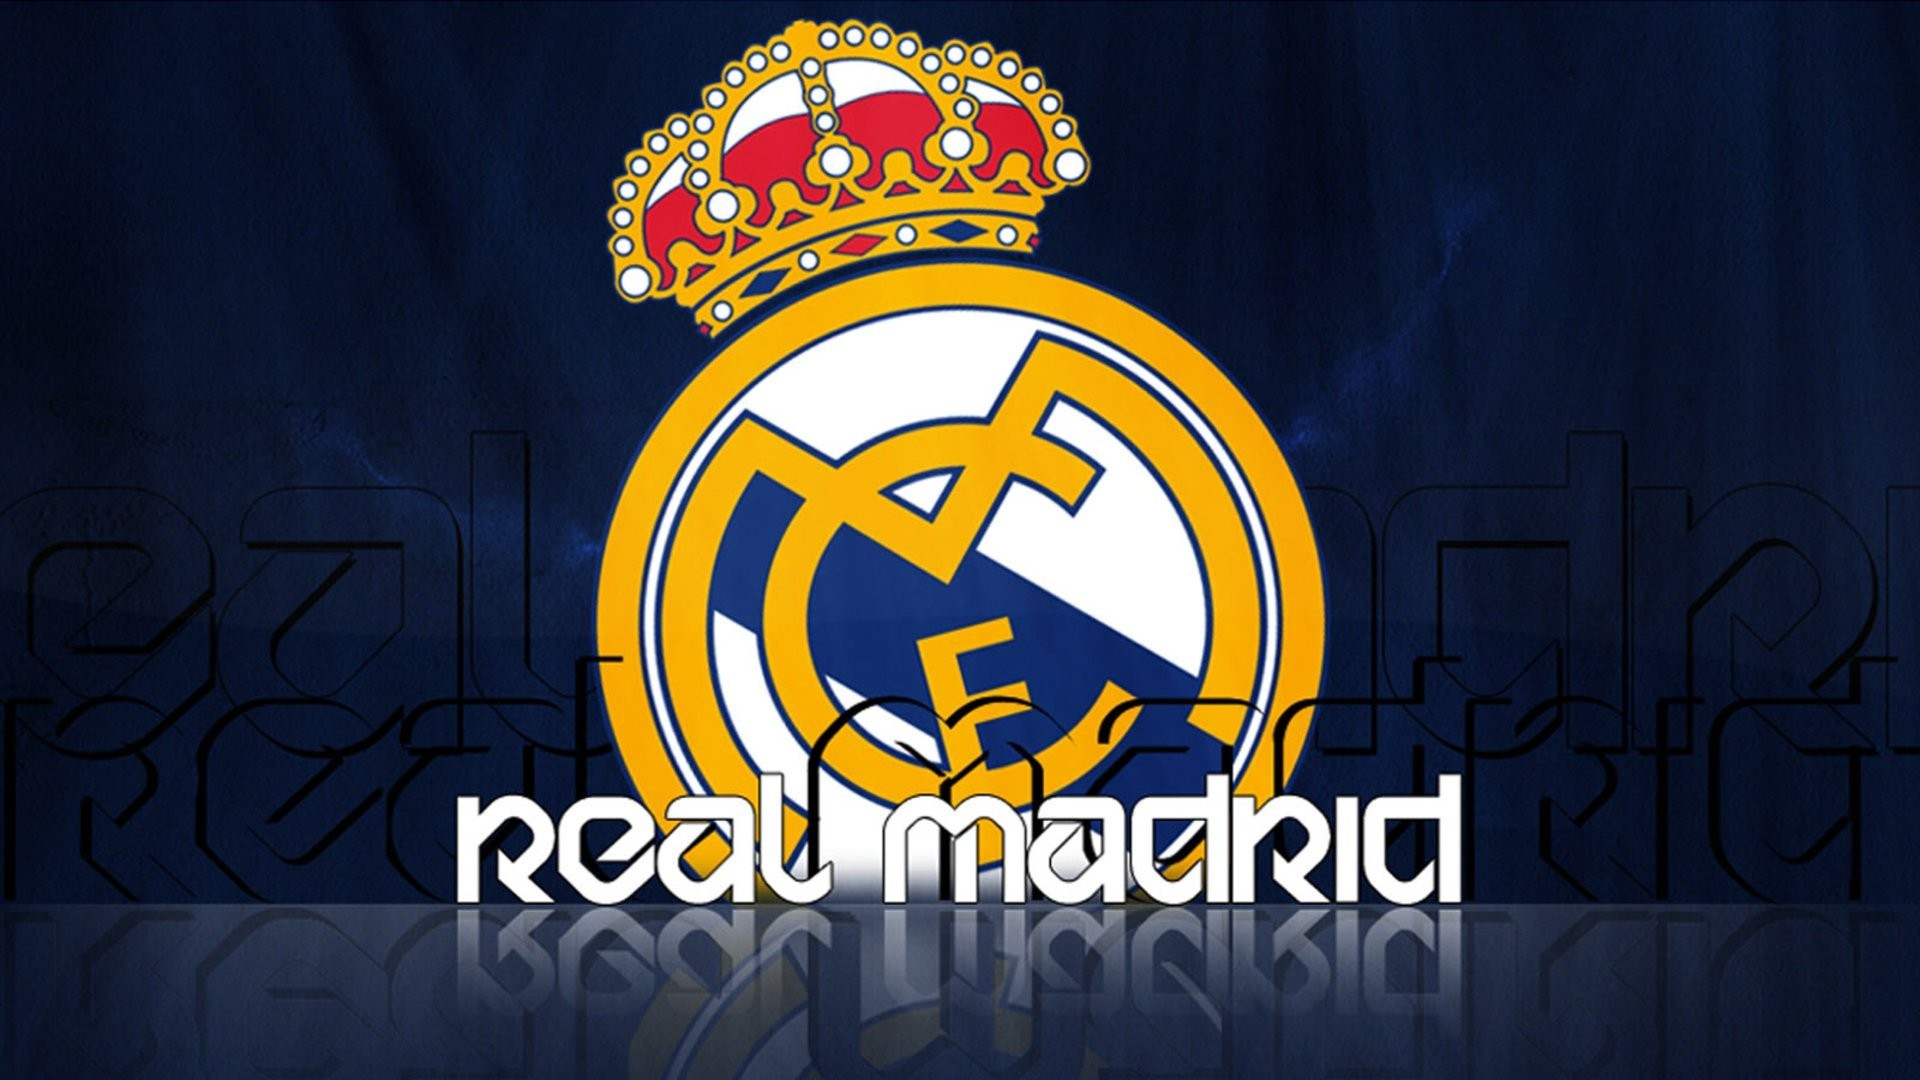 Real madrid 2018 wallpaper 3d - Real madrid pictures wallpapers 2017 ...